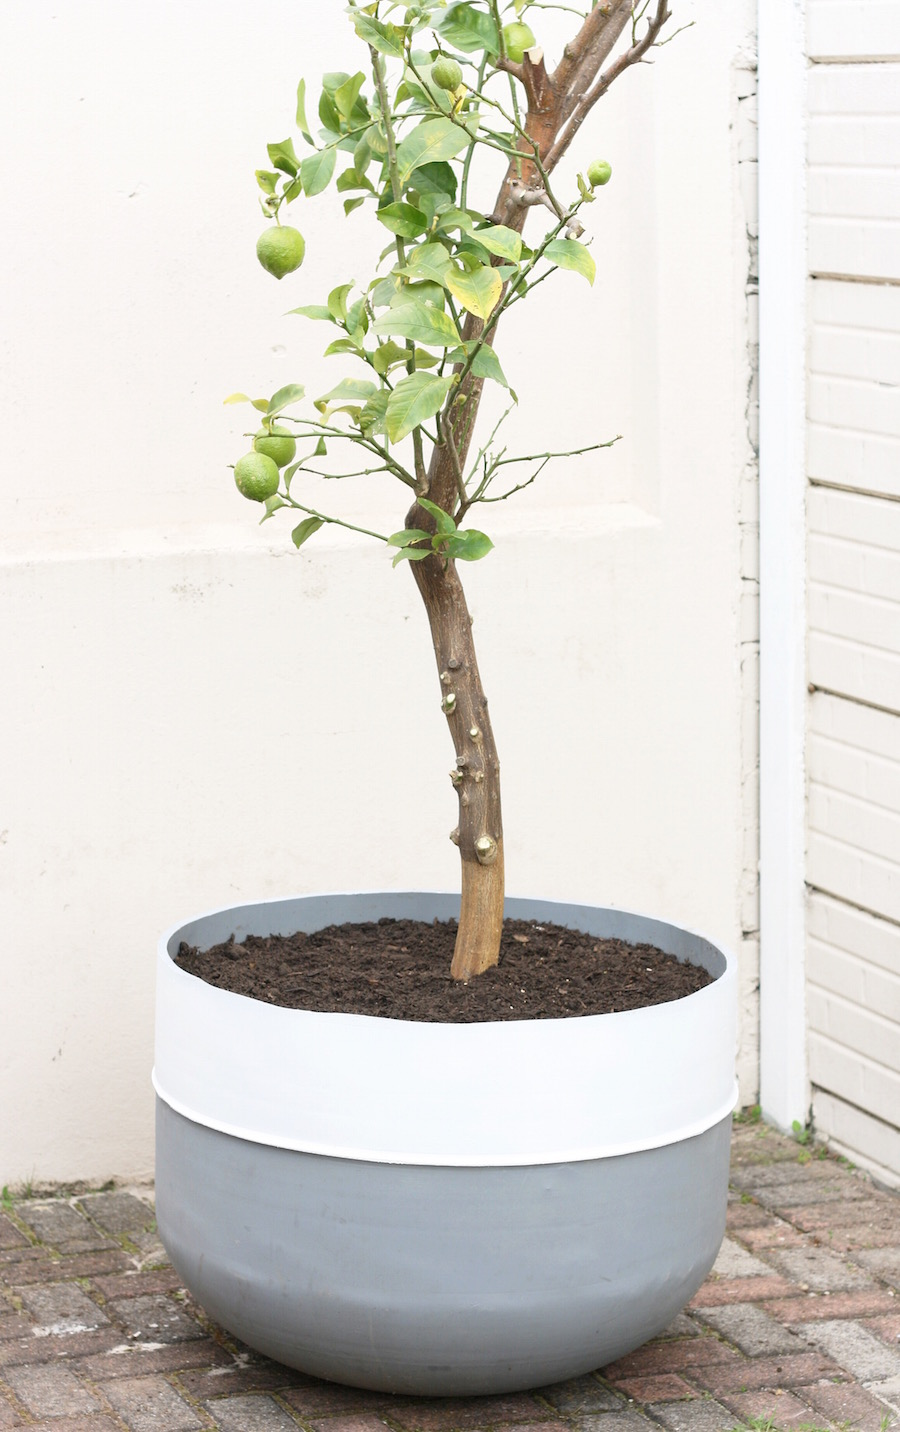 Garden Pot // DIY tutorial